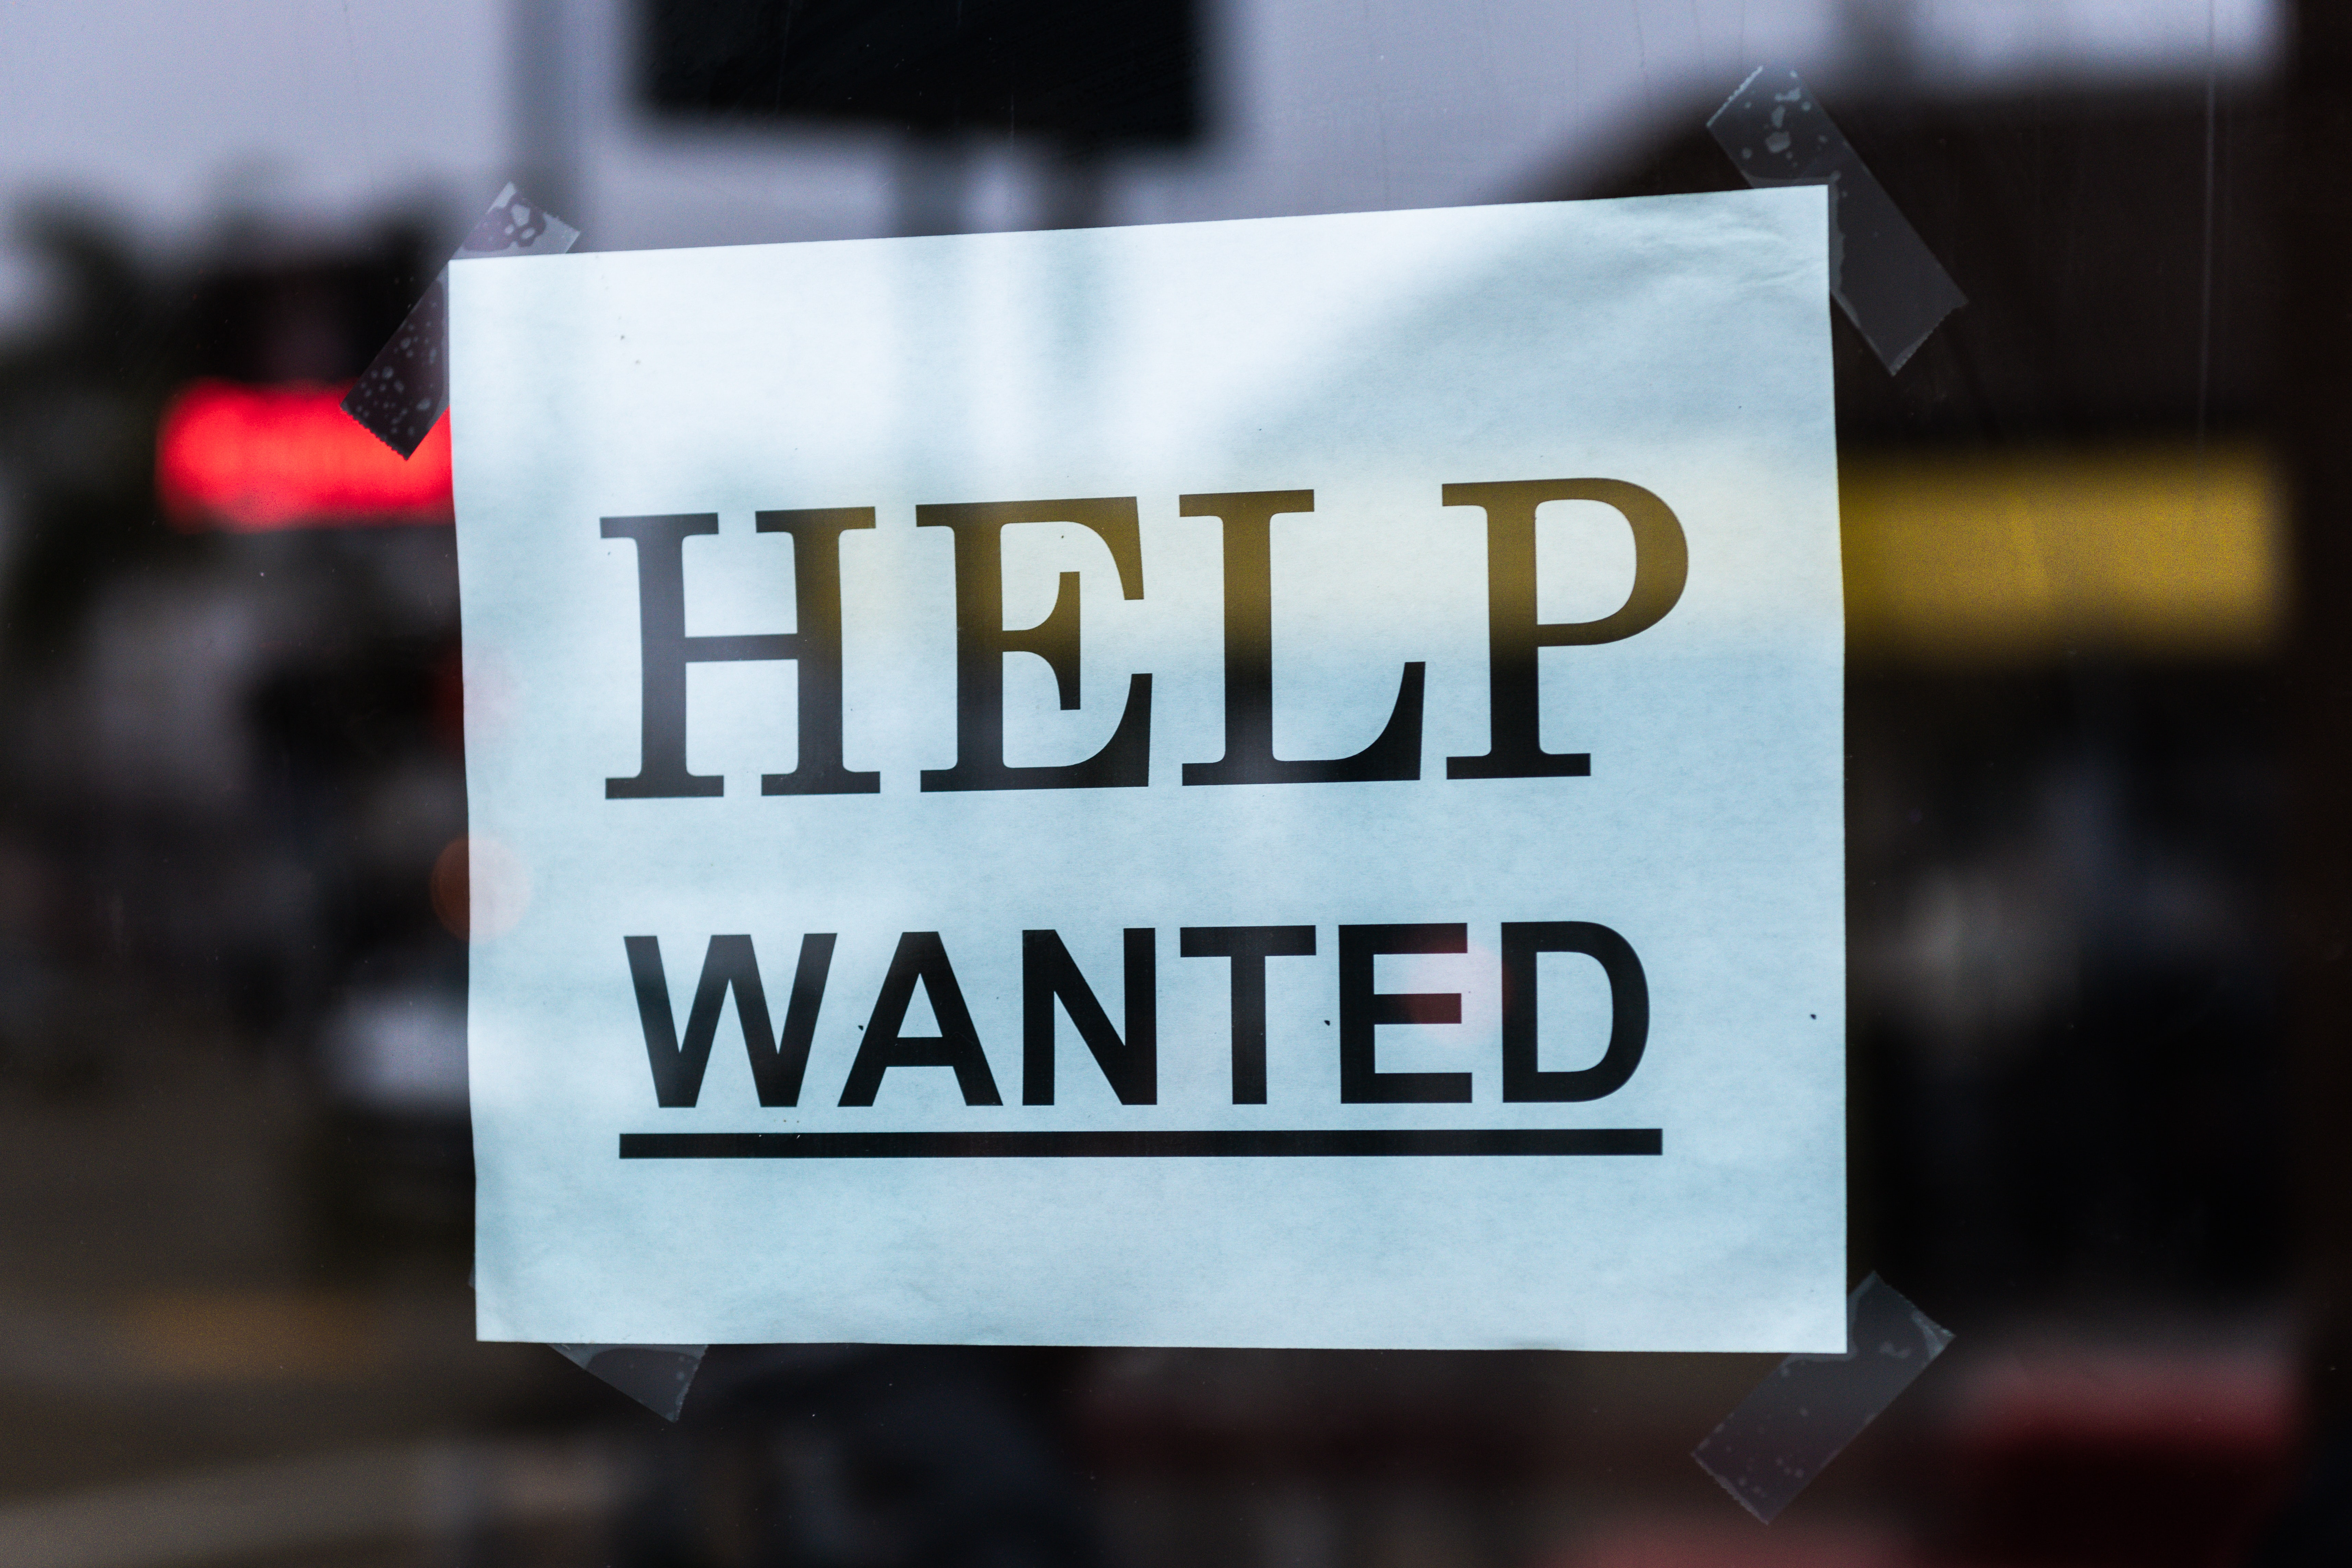 'Help wanted' sign